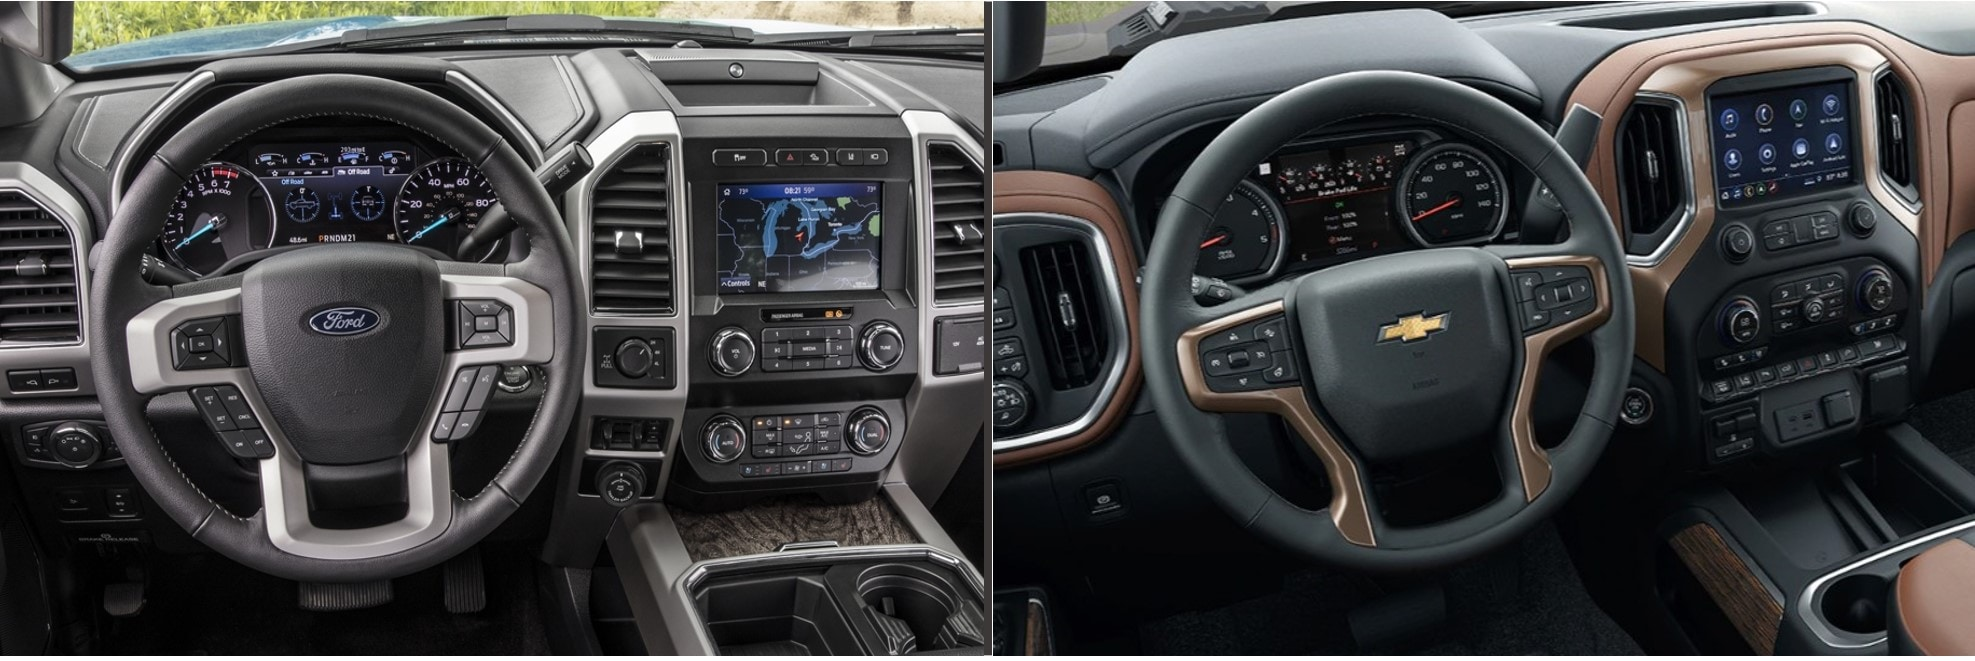 the interior dashboard of a 2020 Ford F-150 compared to a 2020 Chevy Silverado 2500